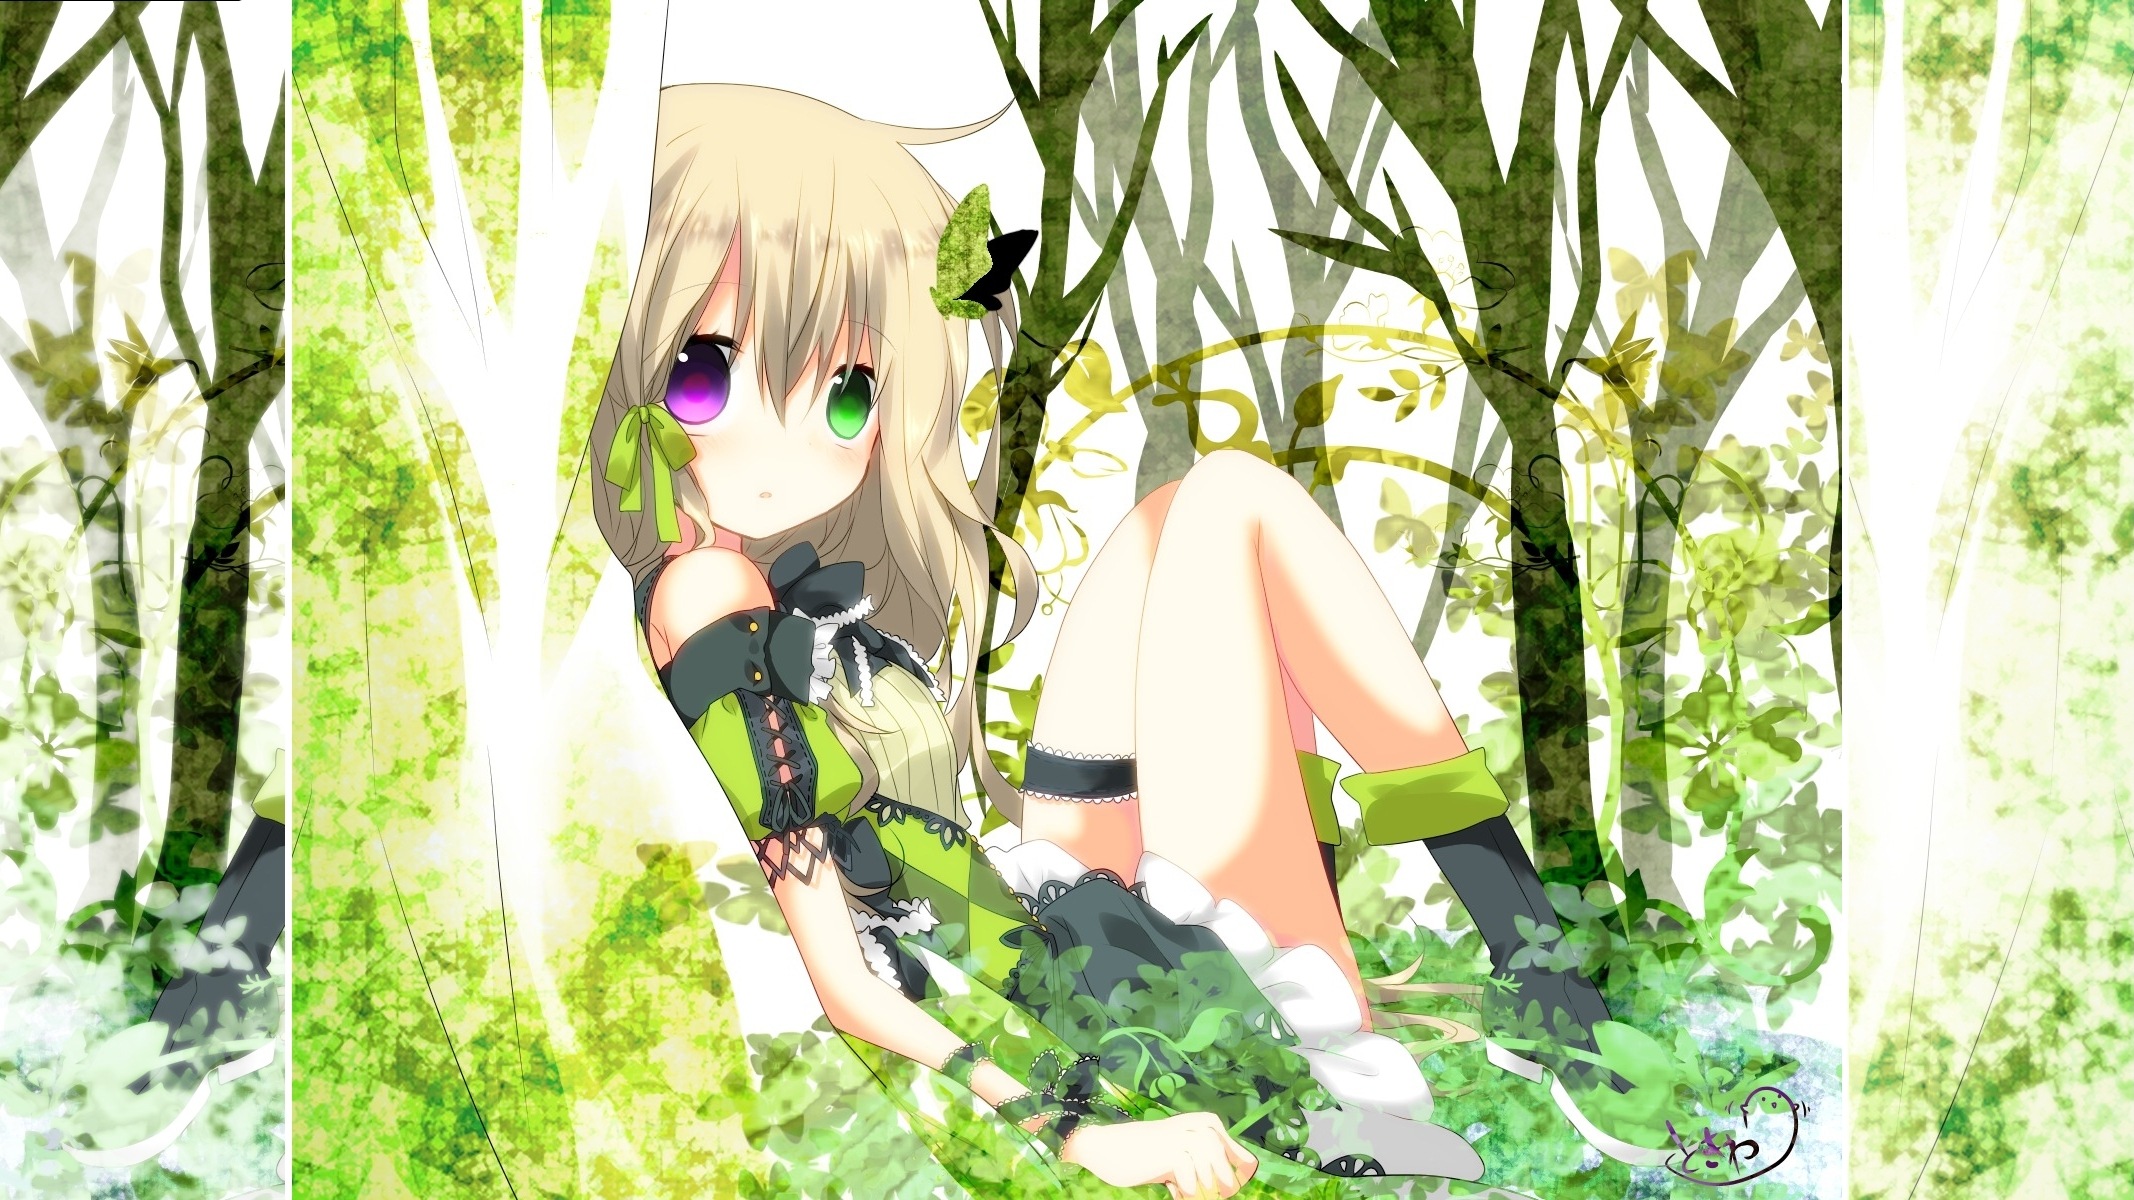 Anime - Unknown  - Forest - Green - Dress - Butterfly - Blonde Hair - Purple Eyes - Green Eyes Wallpaper